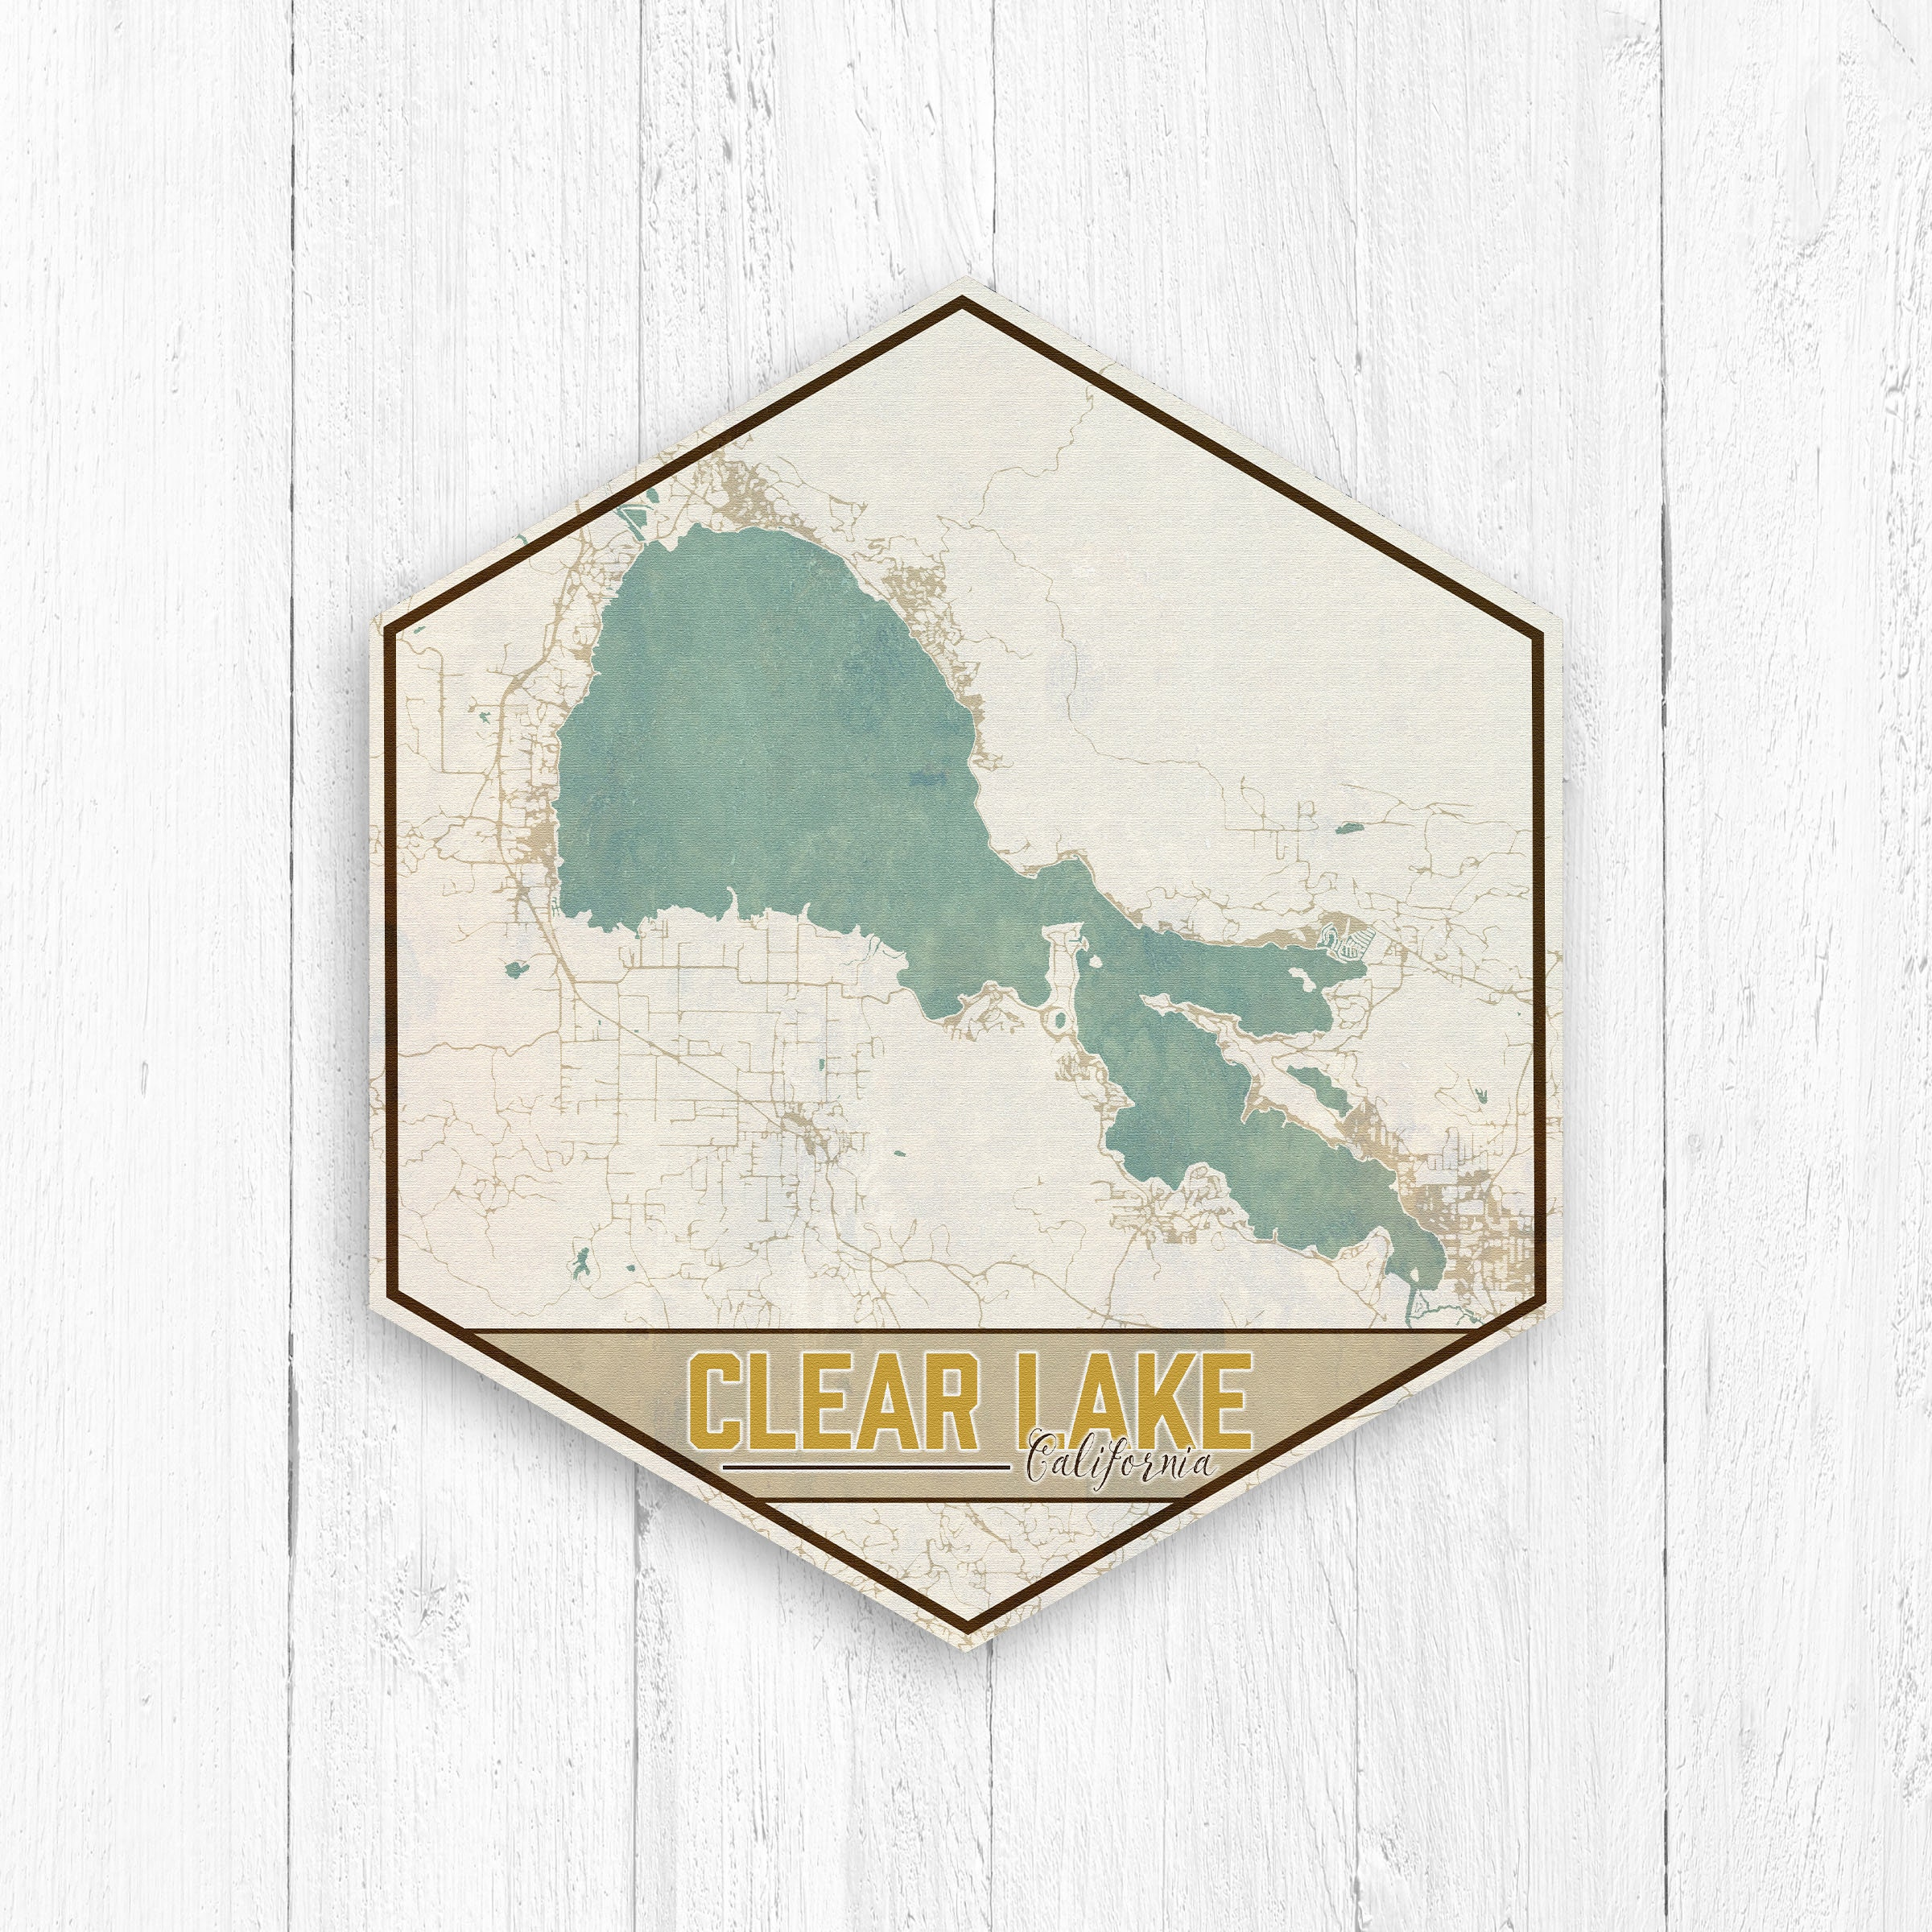 Clear Lake California Map on